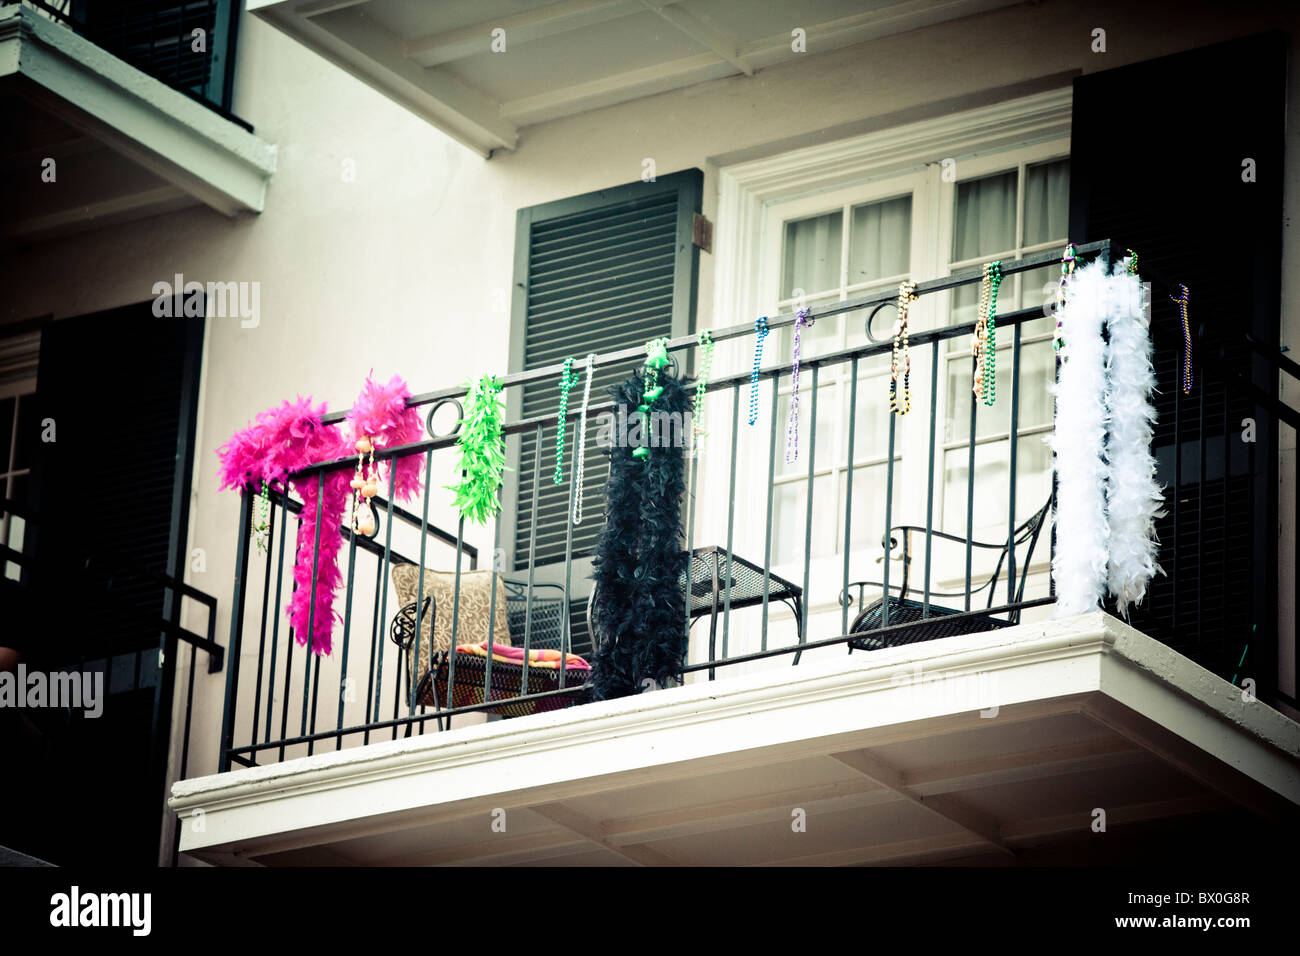 Mardi Gras beads decorate a balcony on Bourbon Street in New Orleans, Louisiana's French Quarter. - Stock Image